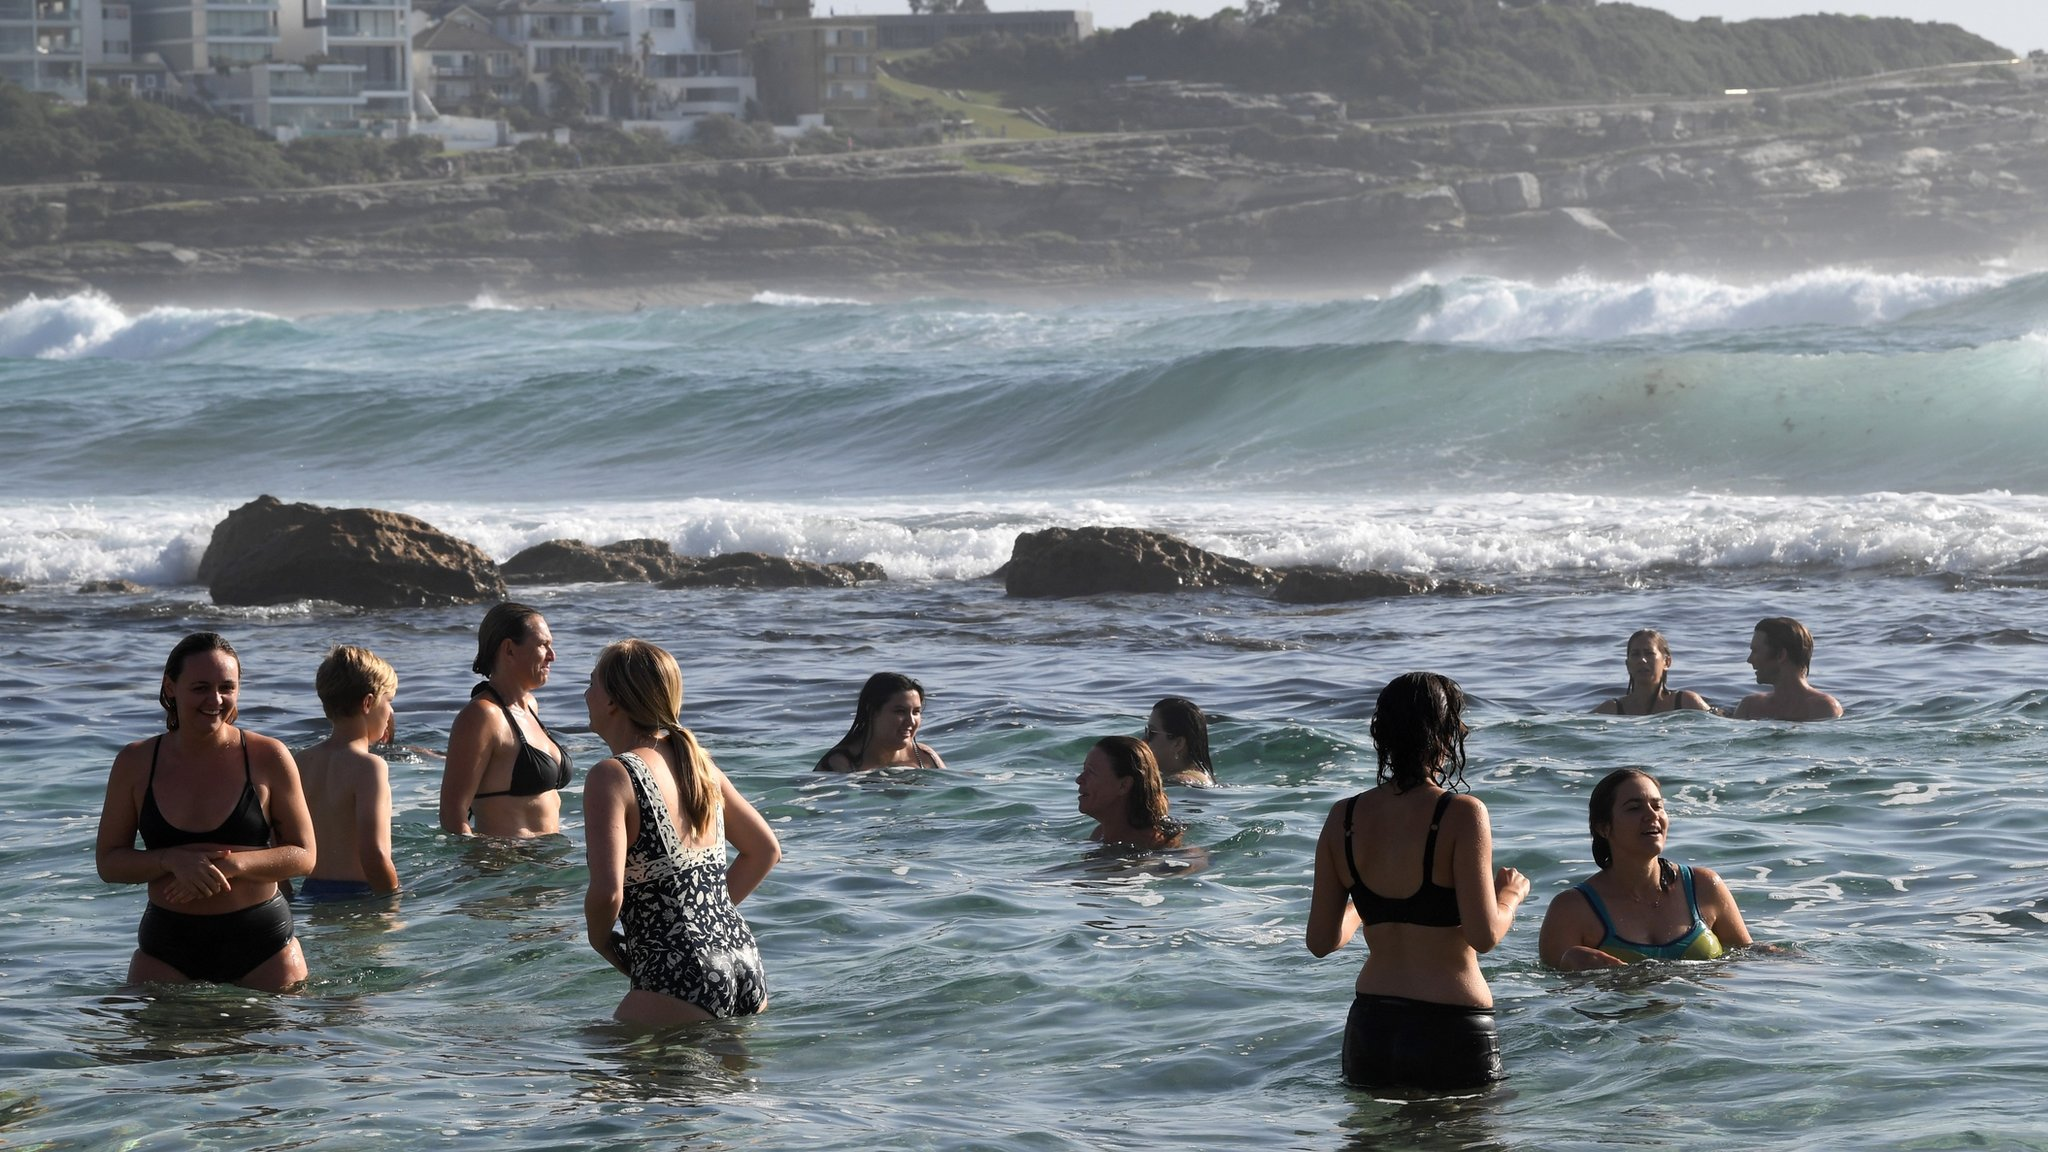 Australia swelters through record-breaking heatwave